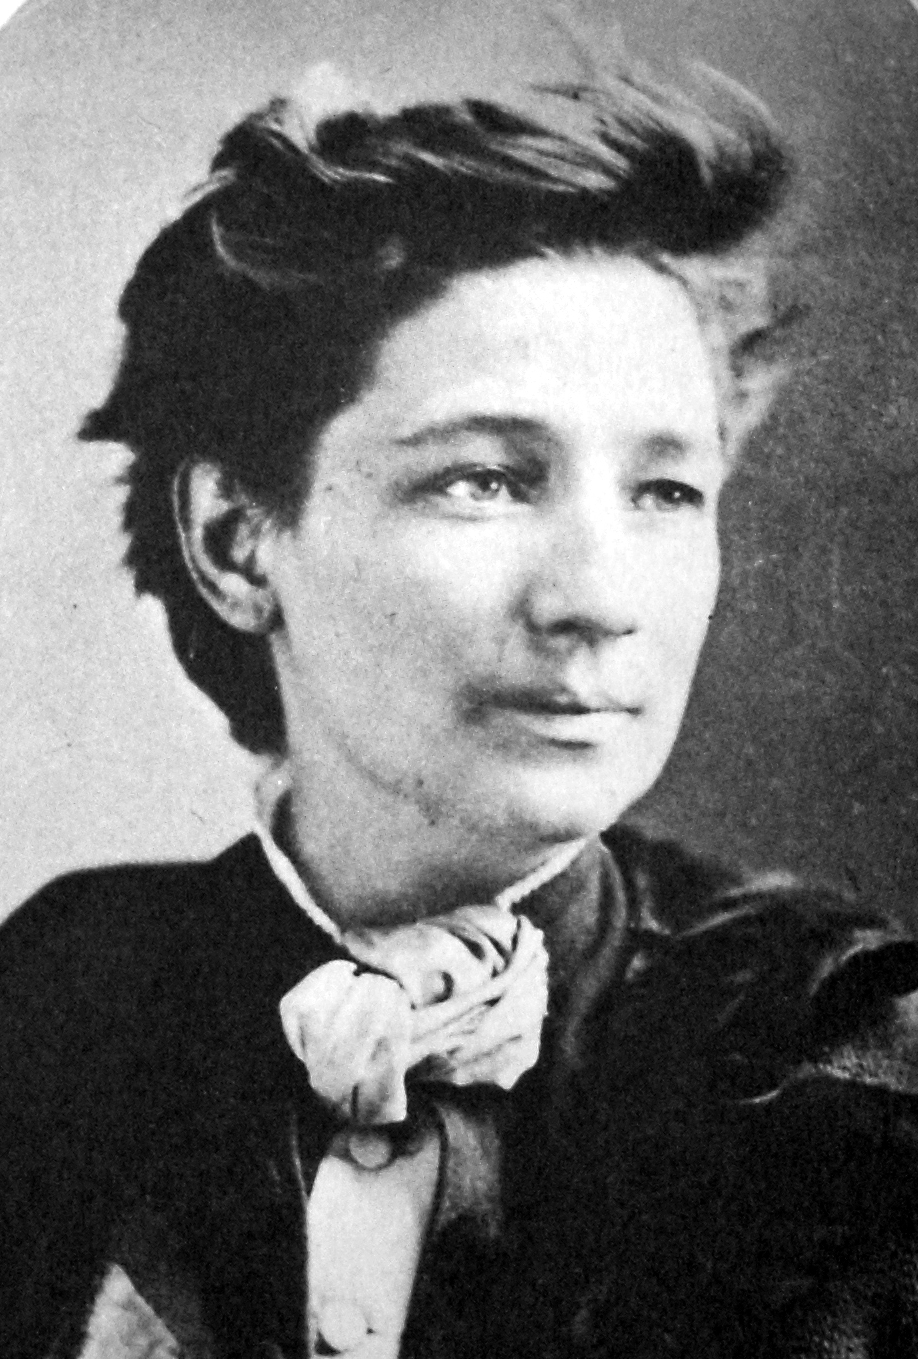 Victoria Woodhull Wikimedia Commons